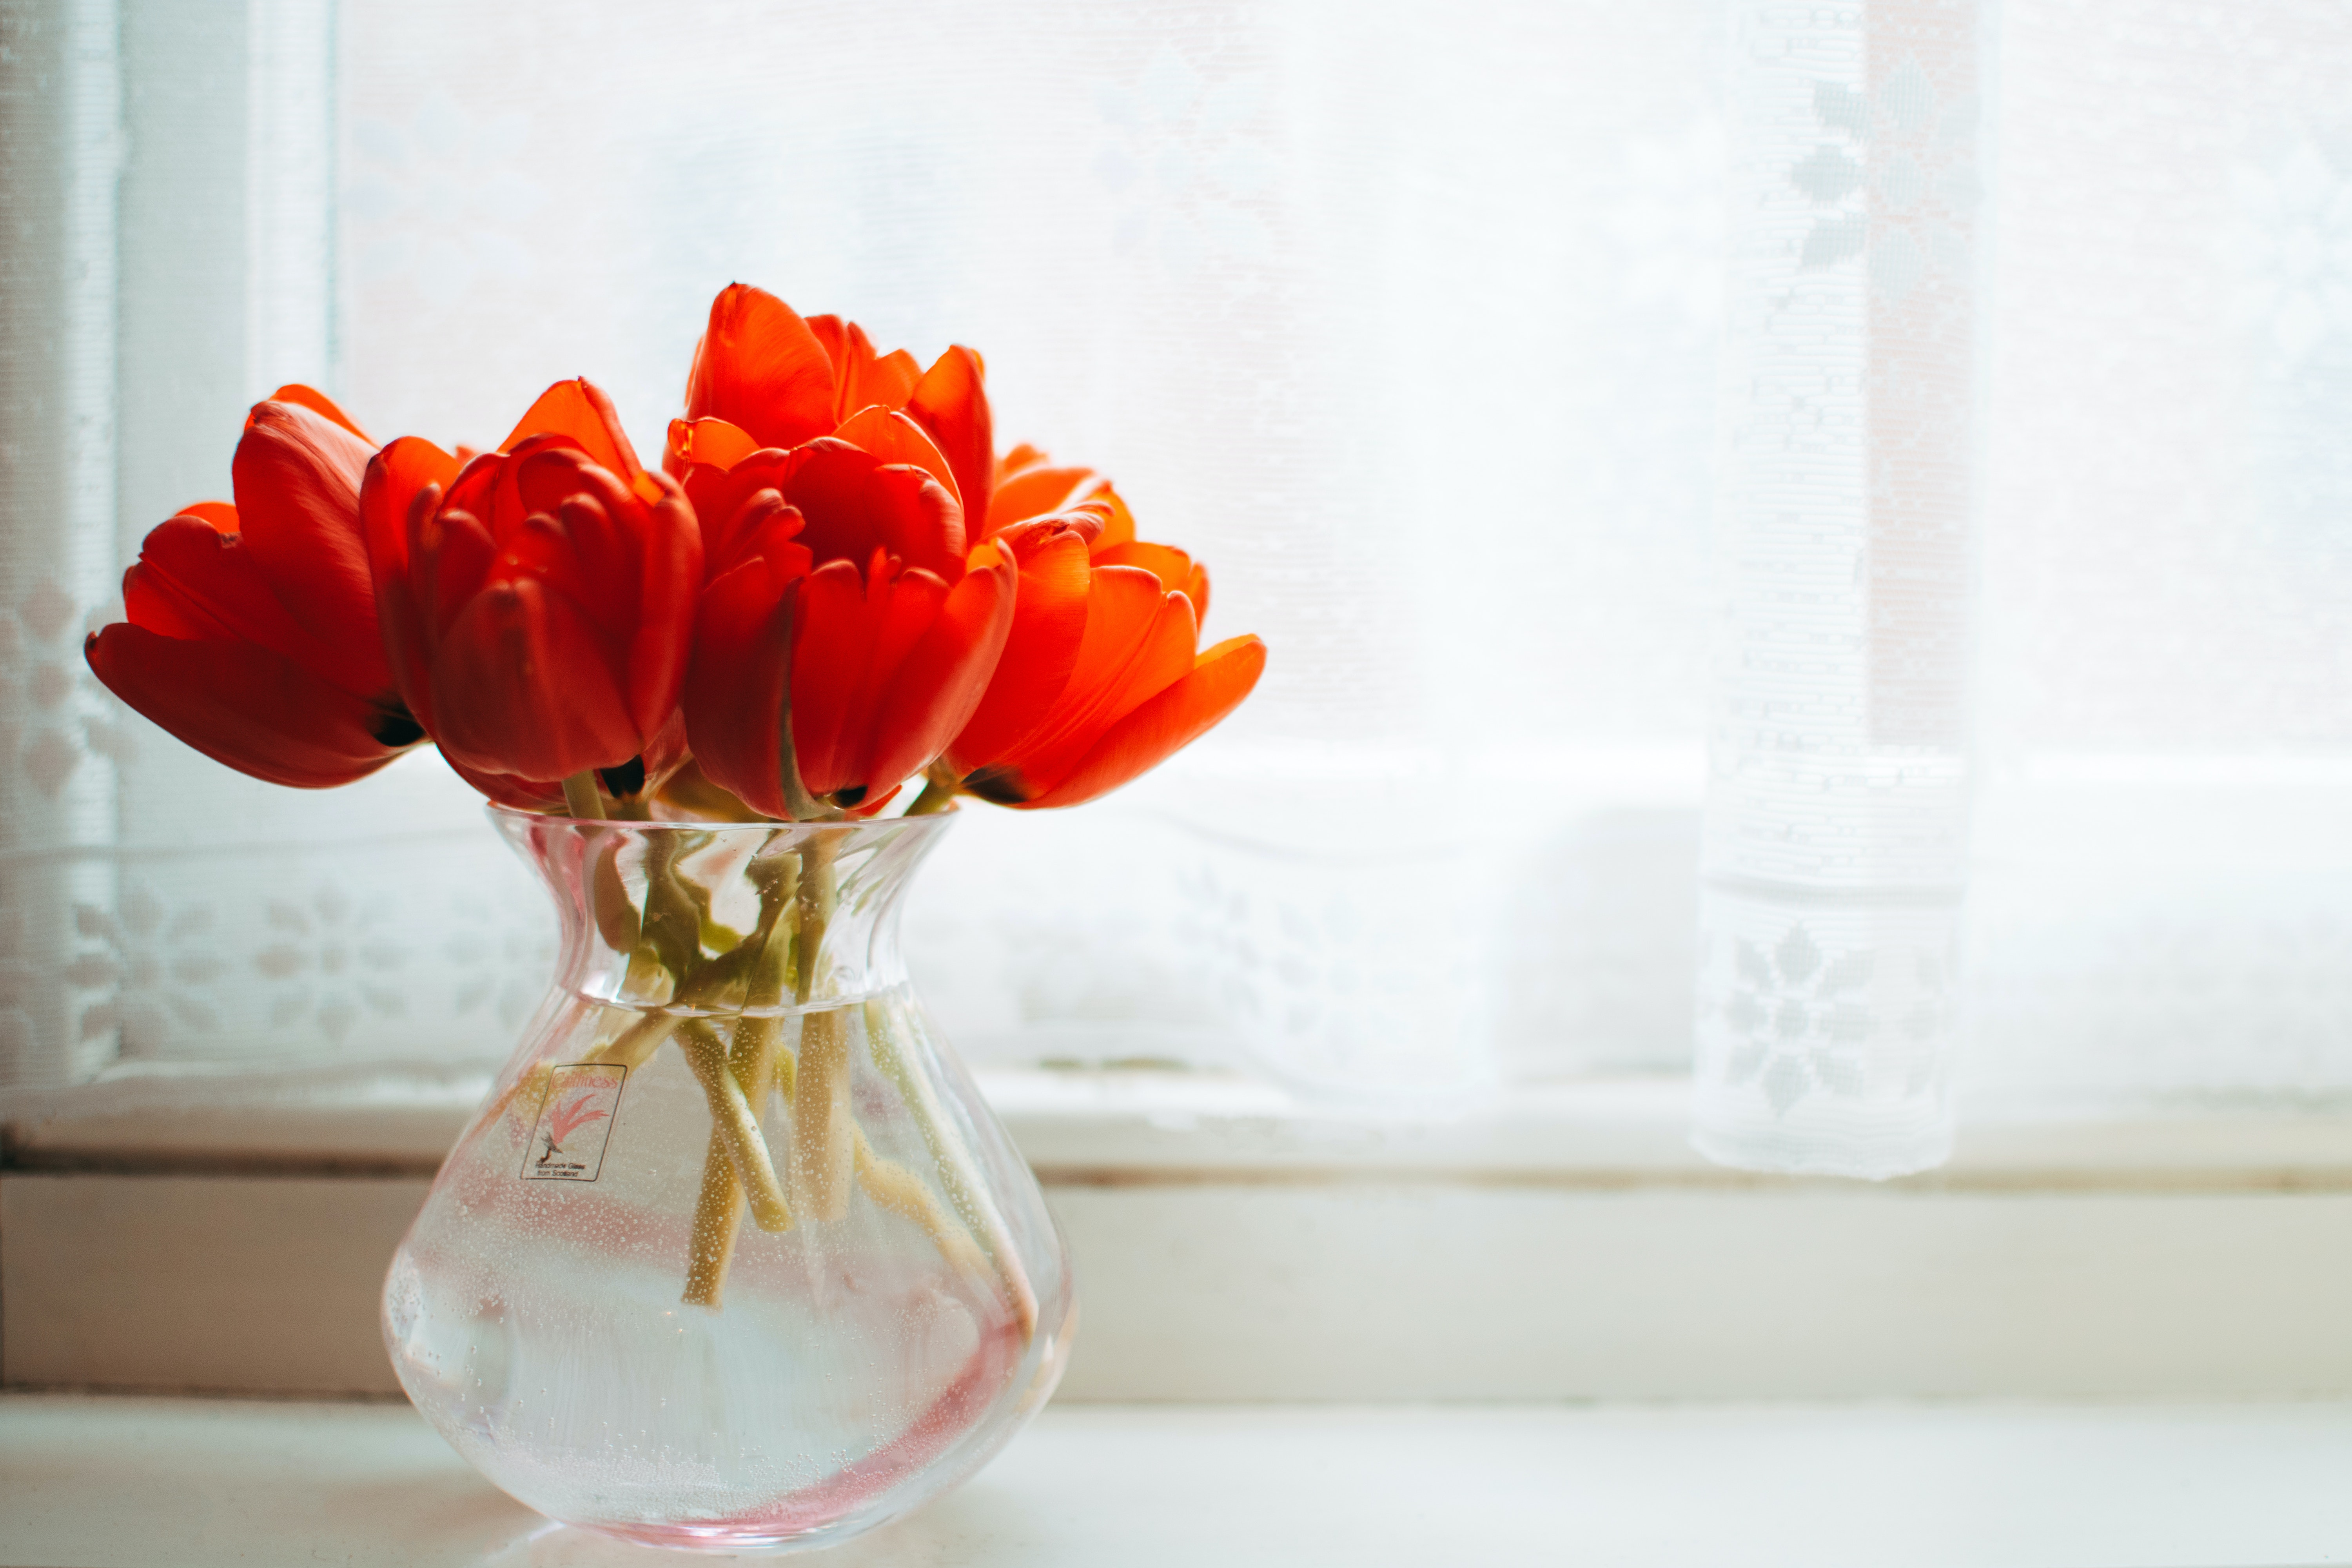 Red Tulips in Clear Glass Vase With Water Centerpiece Near White Curtain & 1000+ Interesting Flower Vase Photos · Pexels · Free Stock Photos